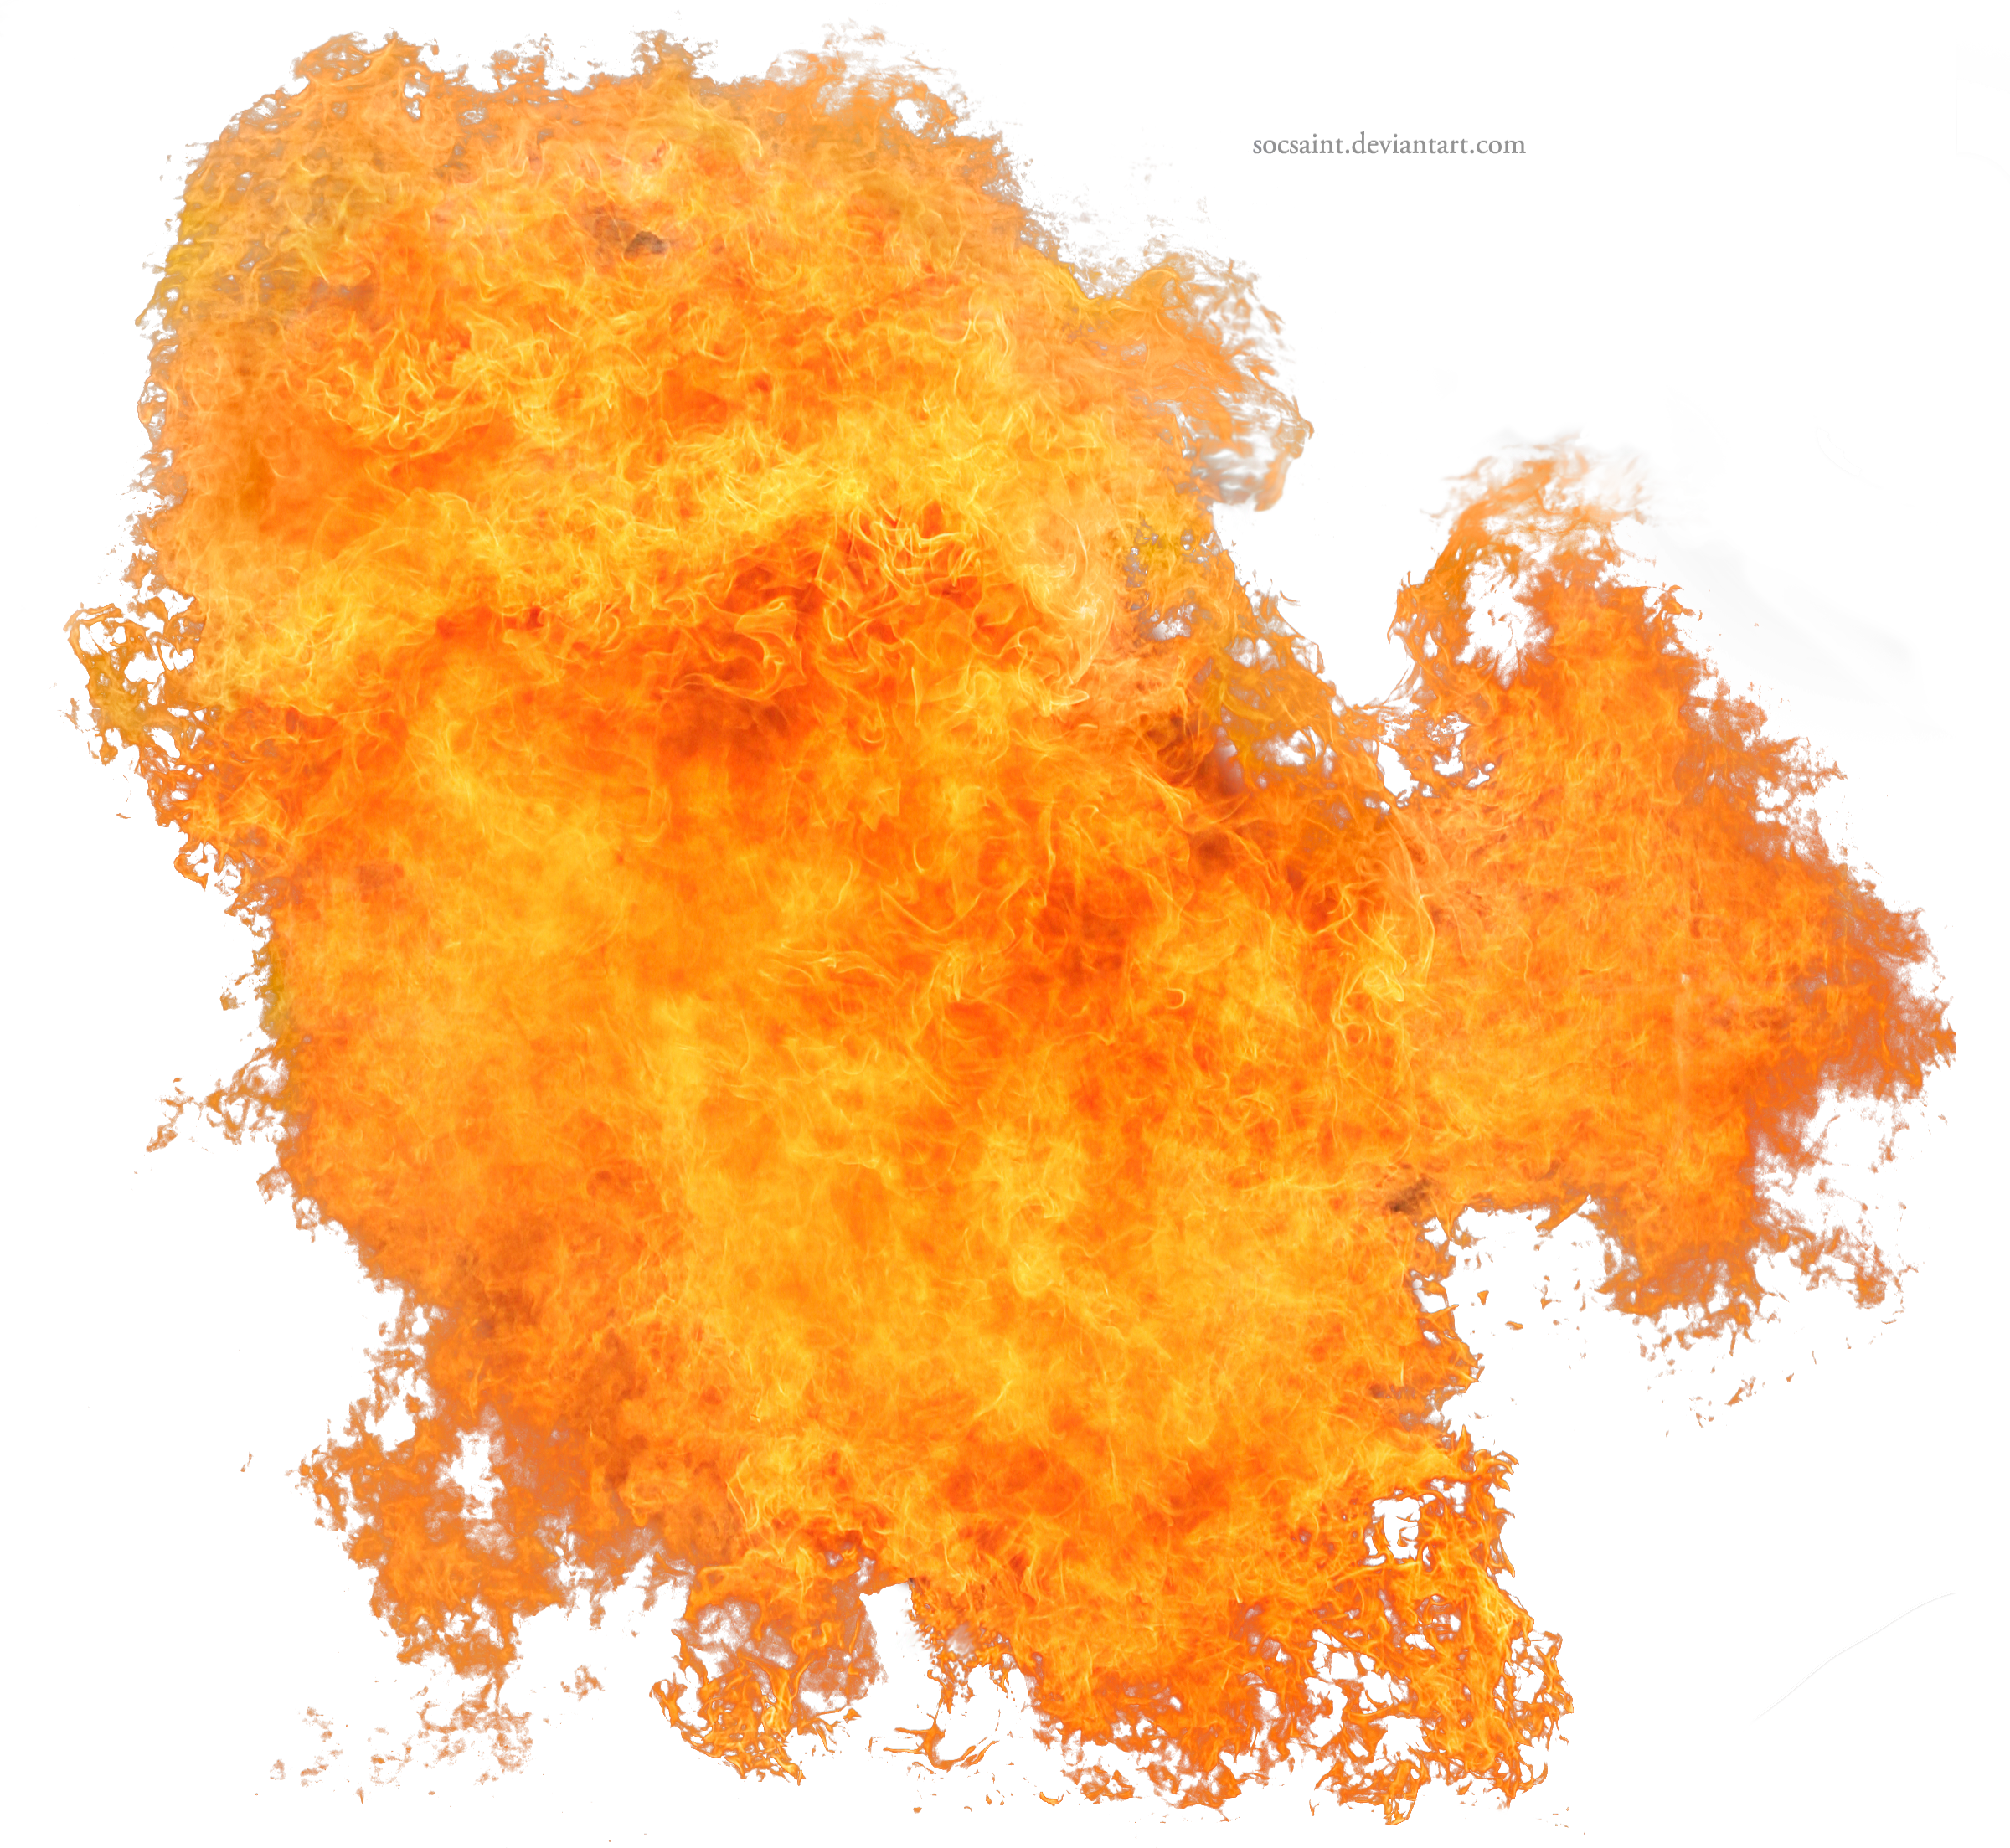 Explosion gif png. Clipart icon transparentpng